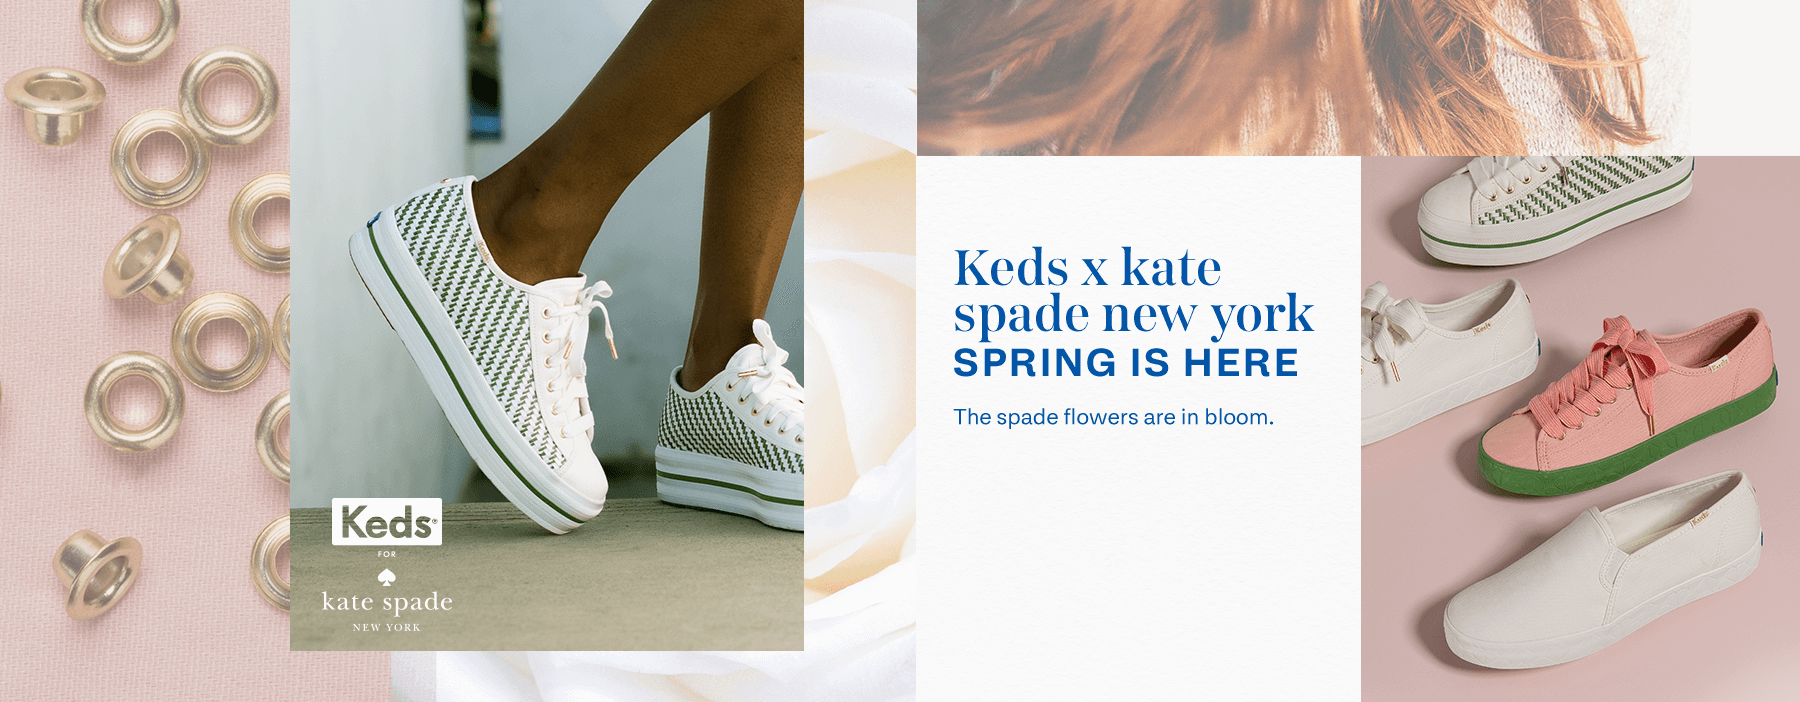 Keds x kate spade new york. Spring is here. The spade flowers are in bloom.